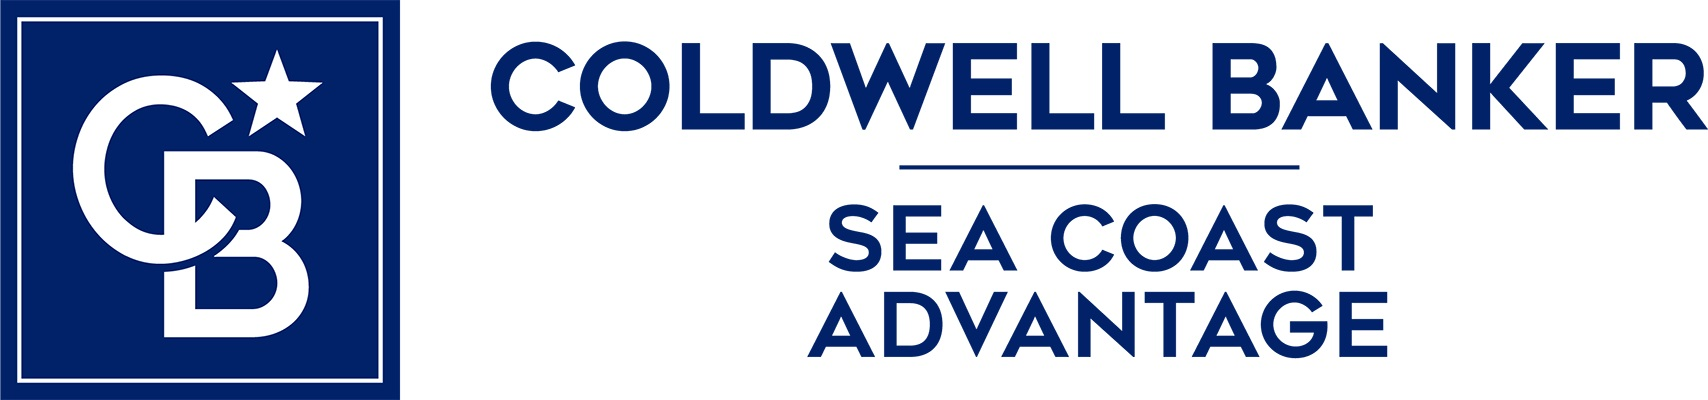 Nora Ruehle - Coldwell Banker Sea Coast Advantage Realty